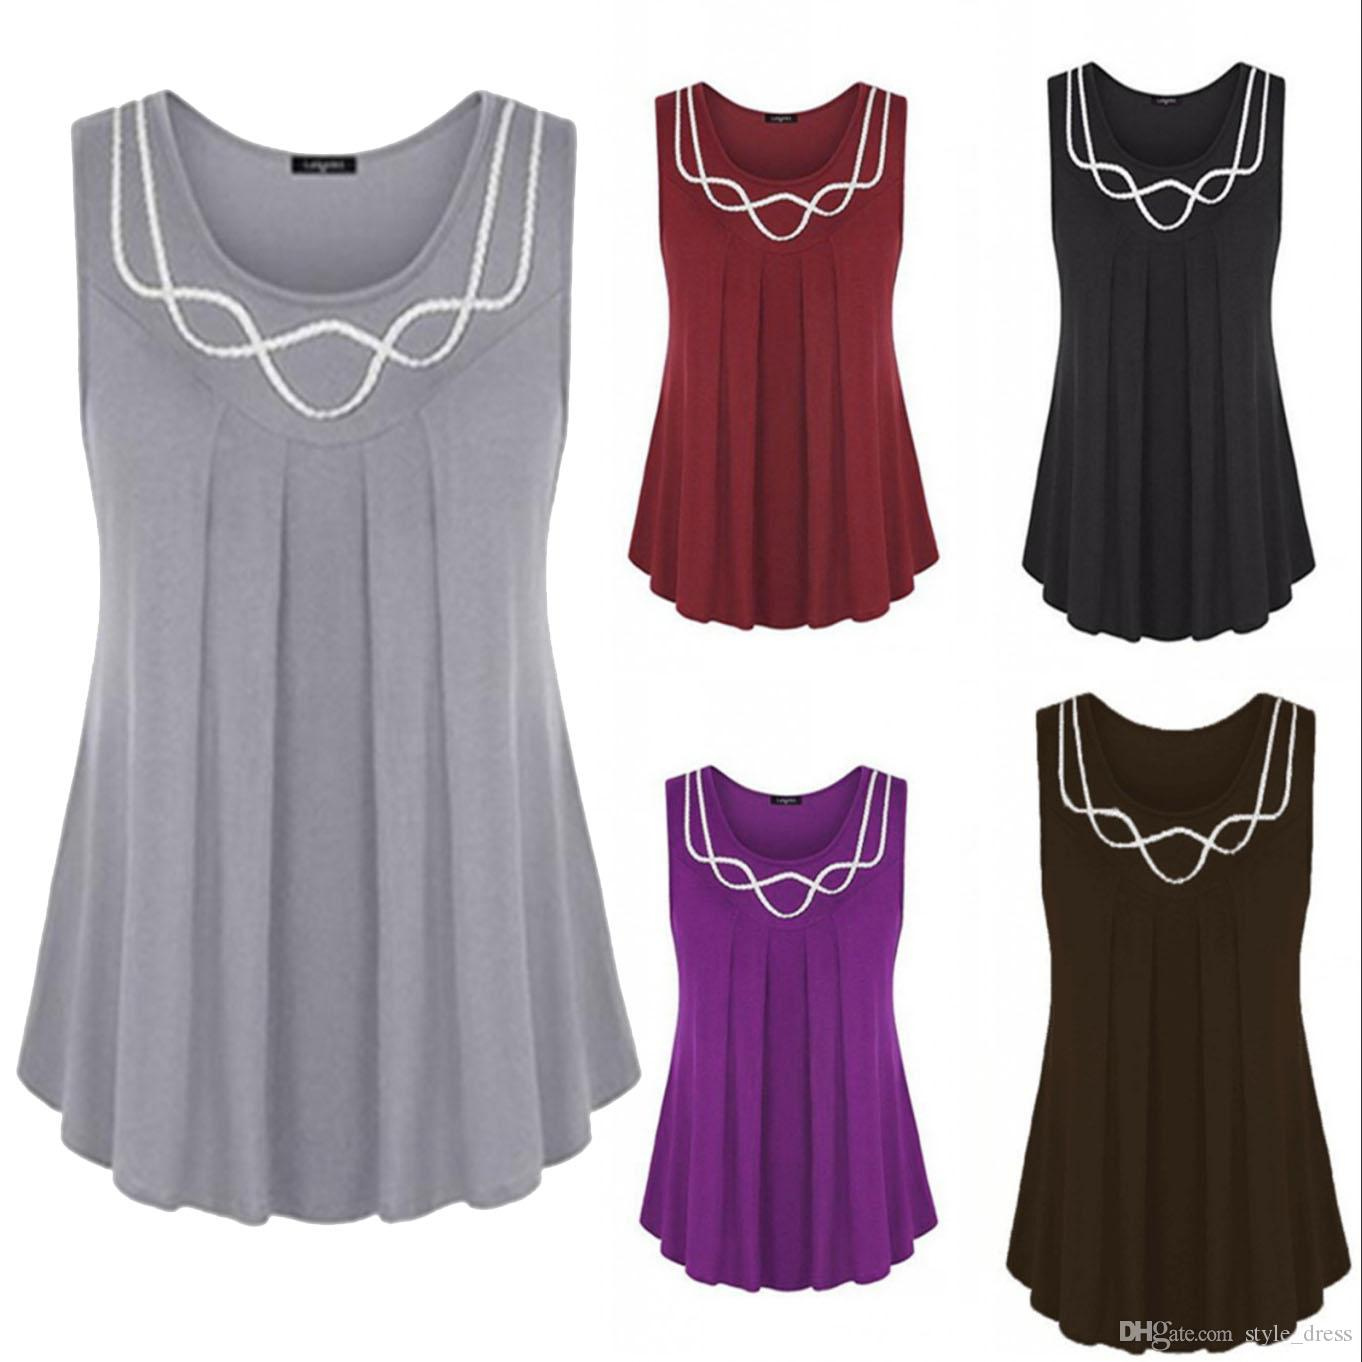 1a37463c Women Tank Tops Summer Casual O Neck Loose Plus Size Sleeveless T Shirt  Blouse Tees Cool T Shirts From Style_dress, $13.07| DHgate.Com